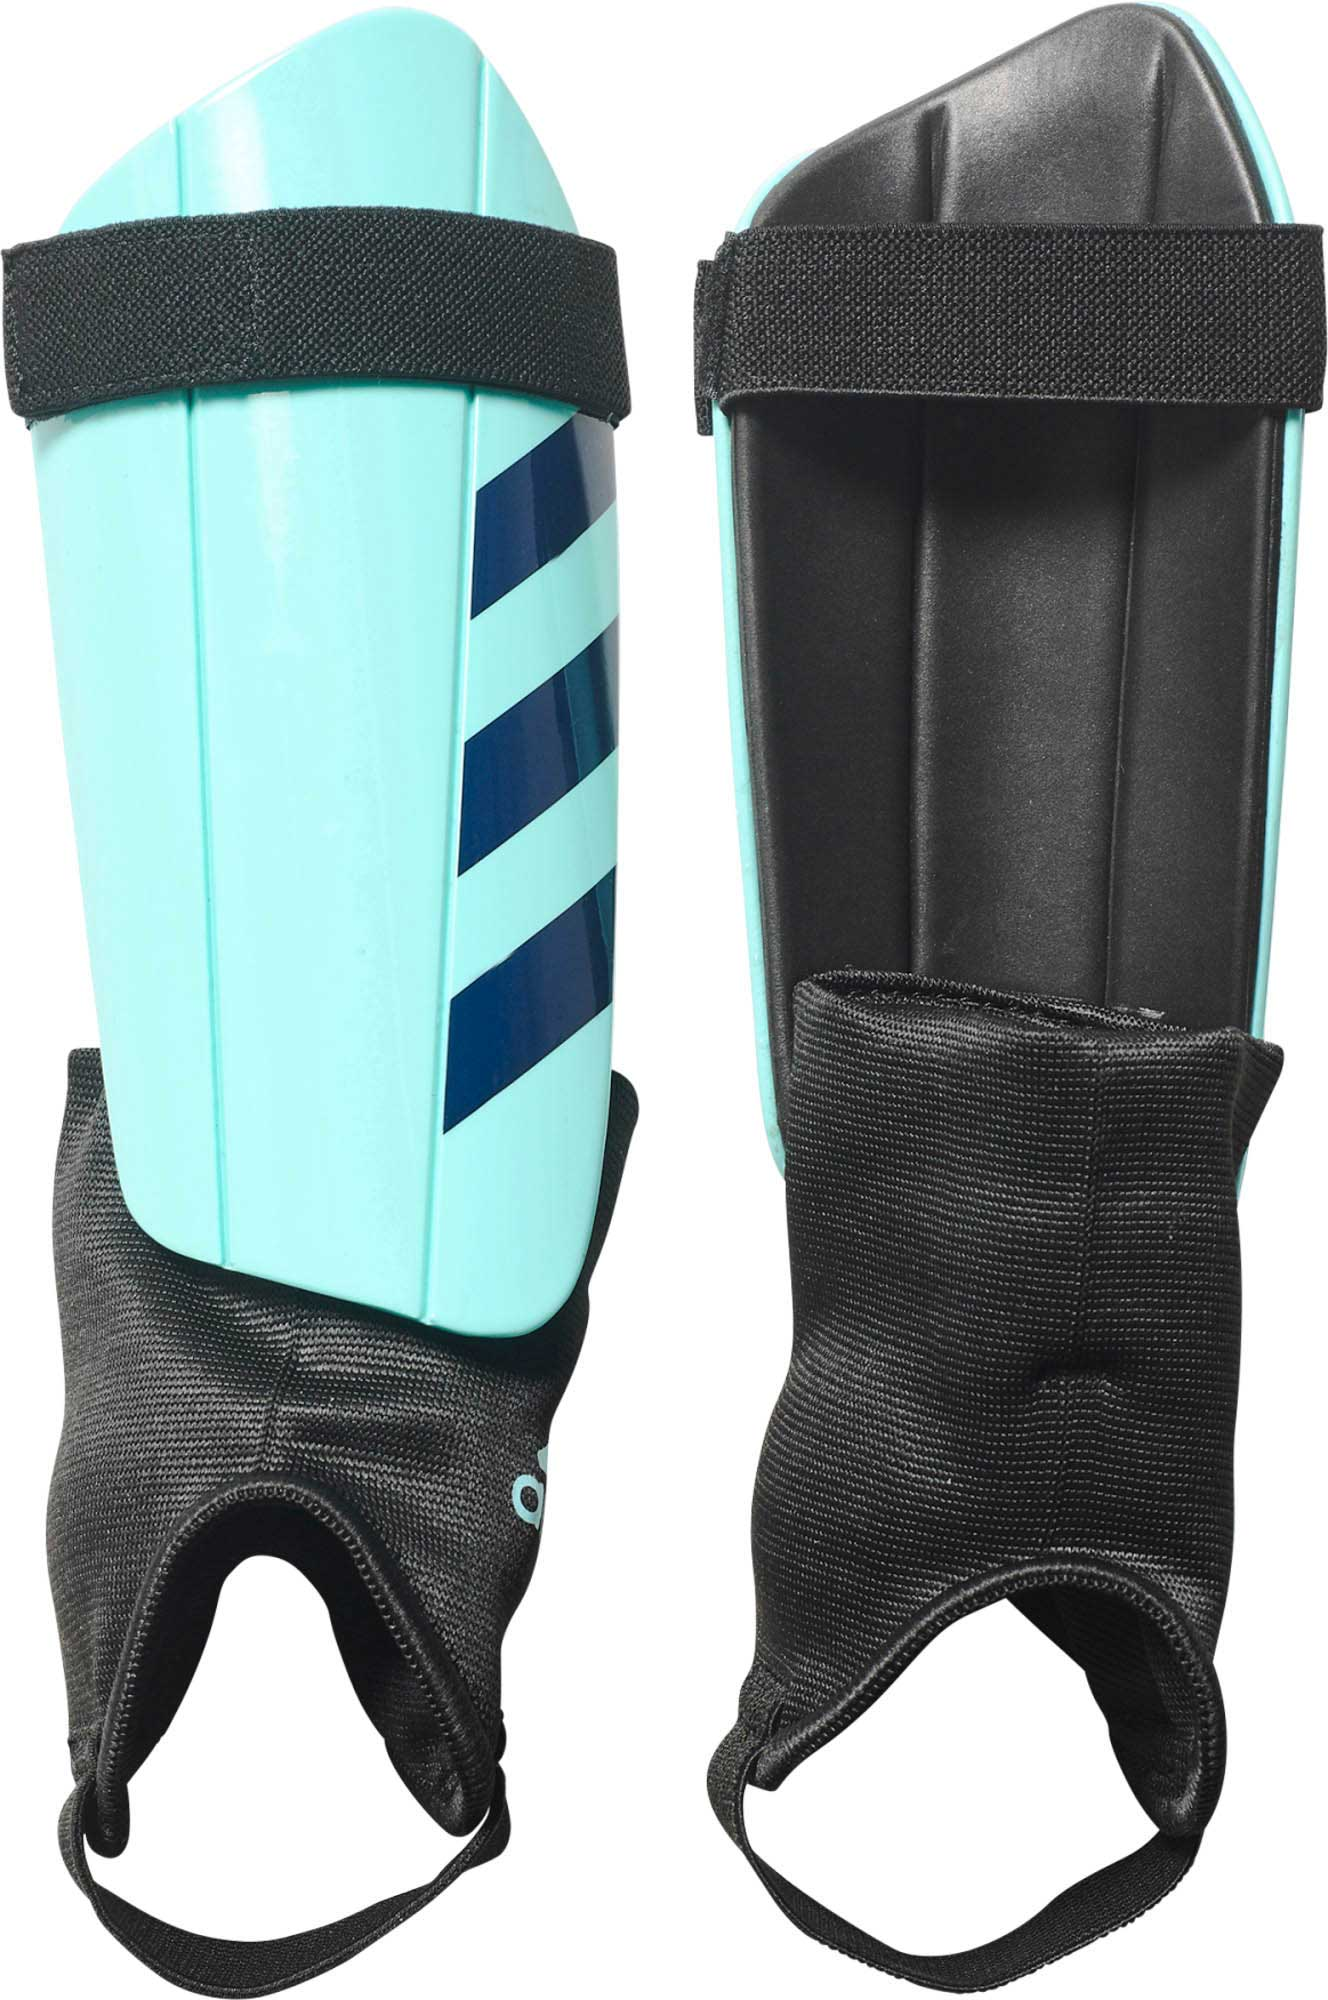 250abde01 adidas Ghost Club Shin Guards – Energy Aqua/Legend Ink